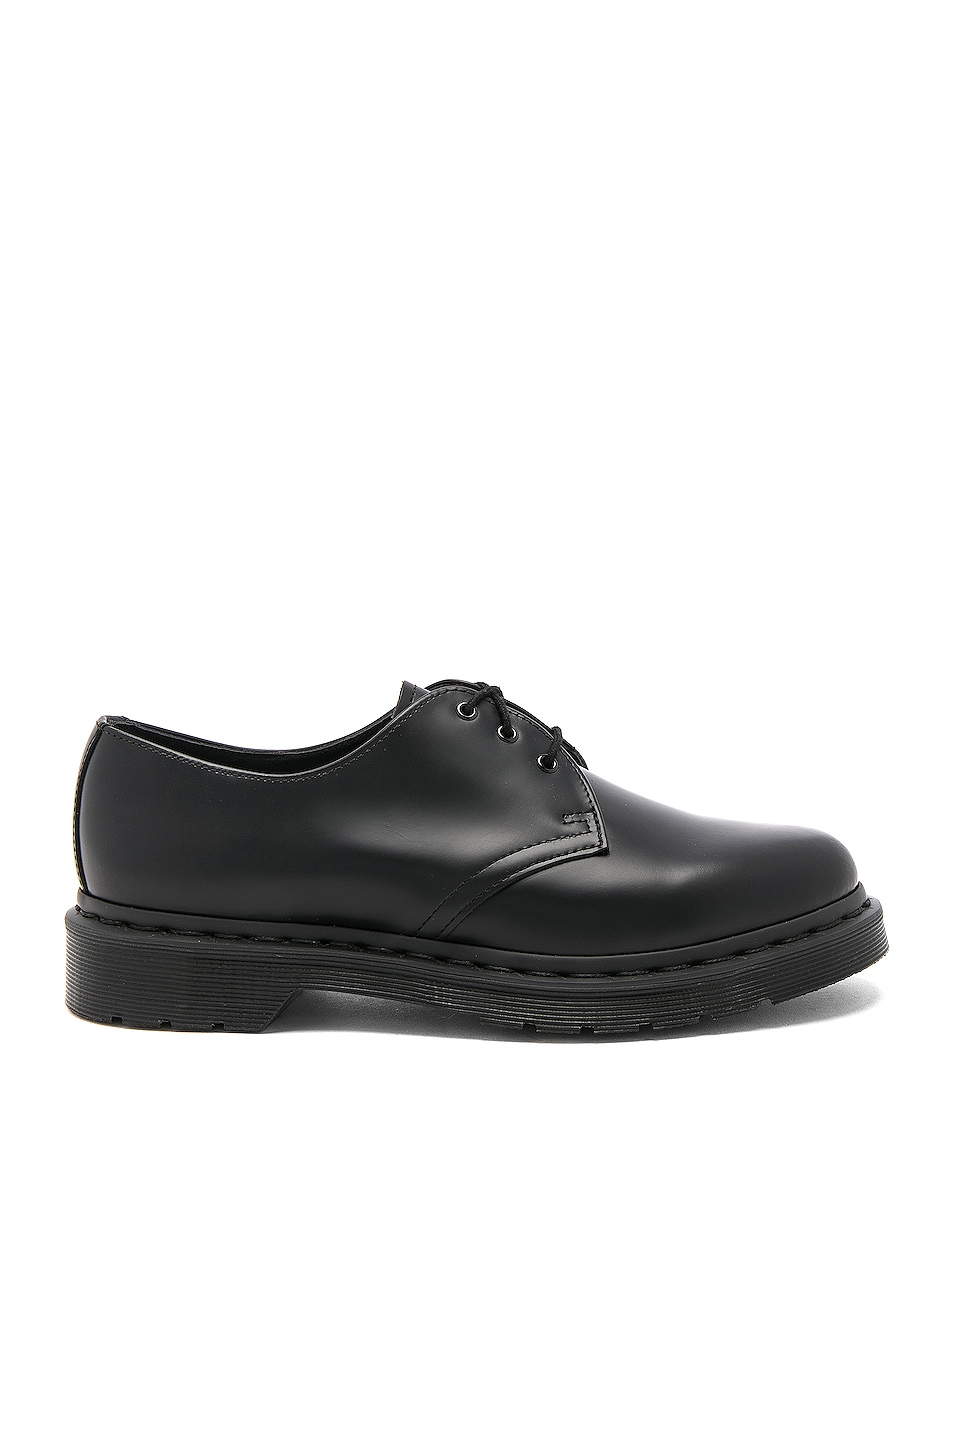 Dr. Martens CHAUSSURES 1461 3 EYE GIBSON